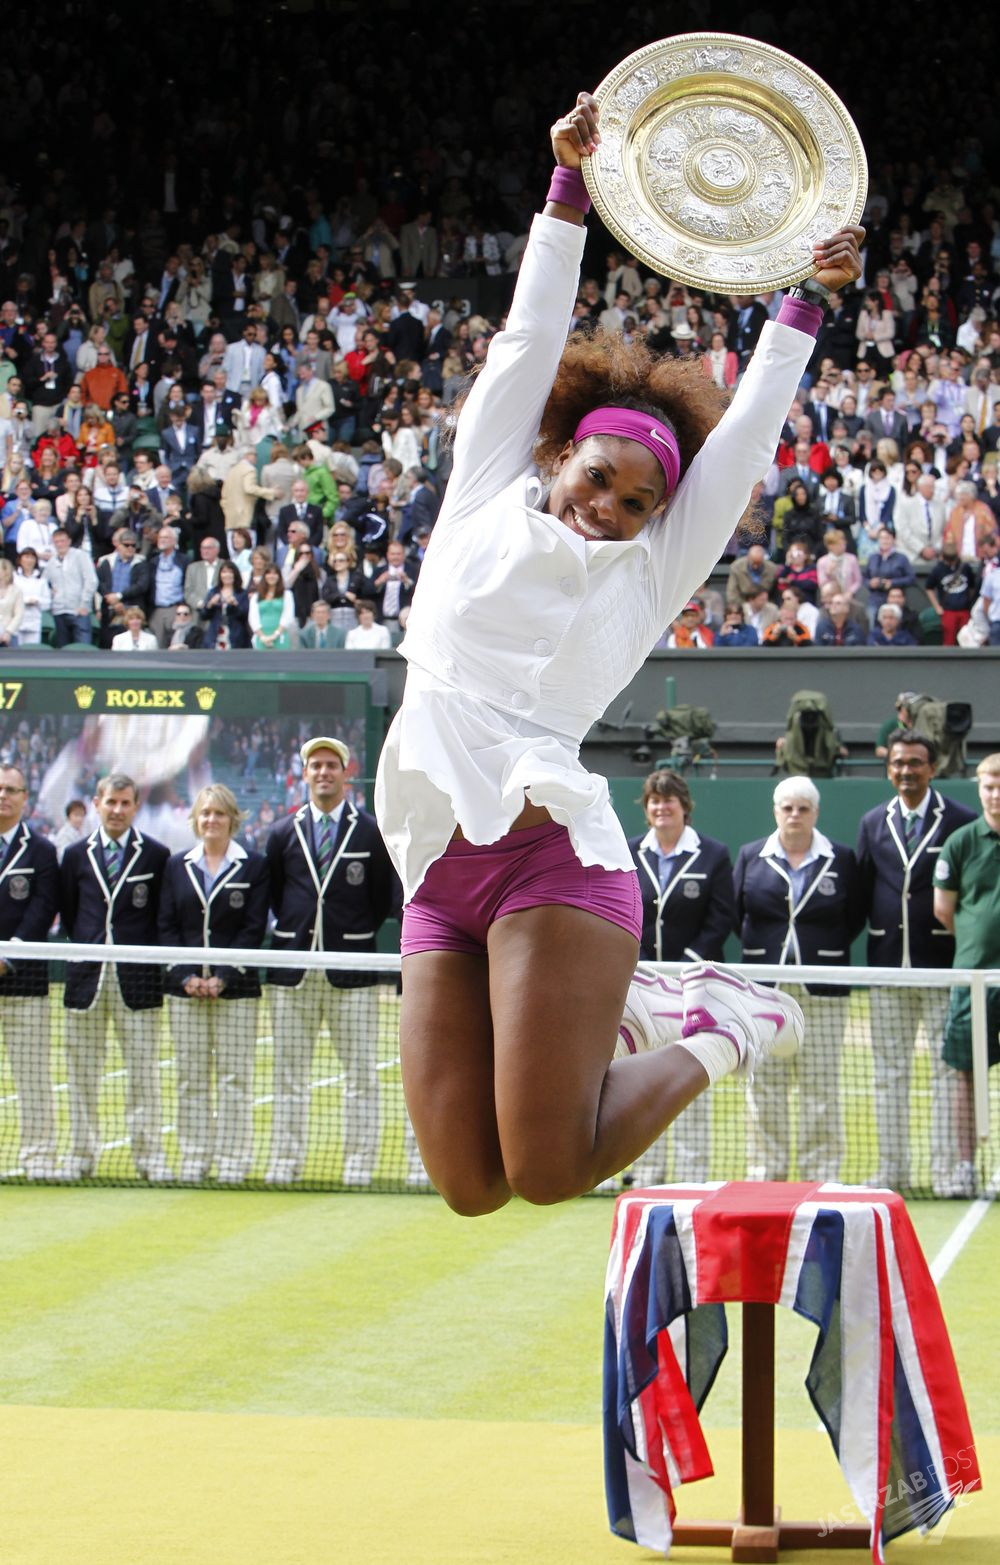 (120707) -- LONDON, July 7, 2012() -- Serena Williams of the United States jumps with the trophy in her hands in the awarding ceremony after defeating Agnieszka Radwanska of Poland in the women's final tennis match at the Wimbledon tennis championships in London July 7, 2012.   (/Wang Lili)